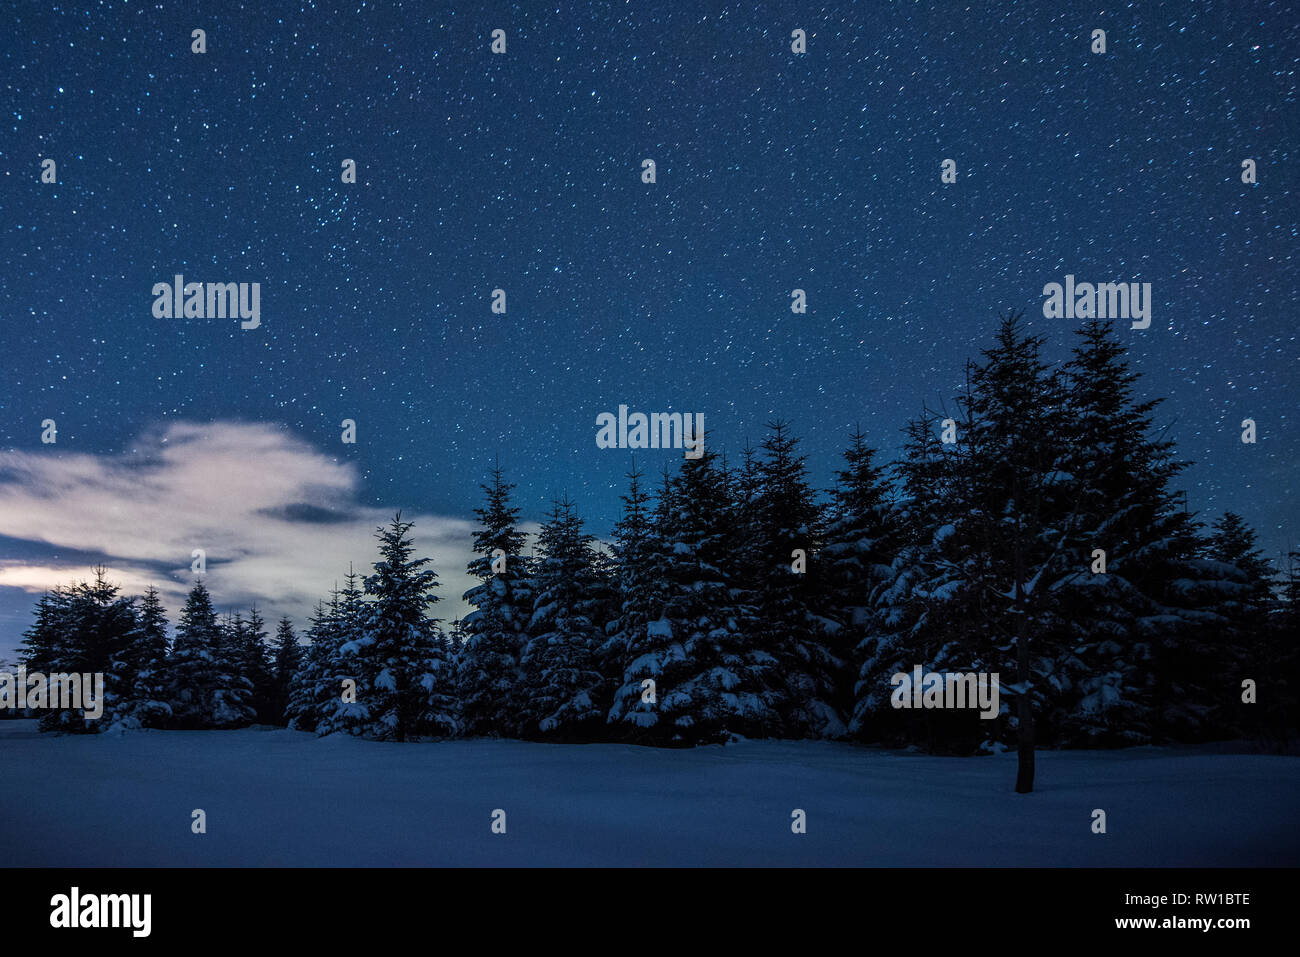 starry dark sky and spruces in carpathian mountains at night in winter - Stock Image